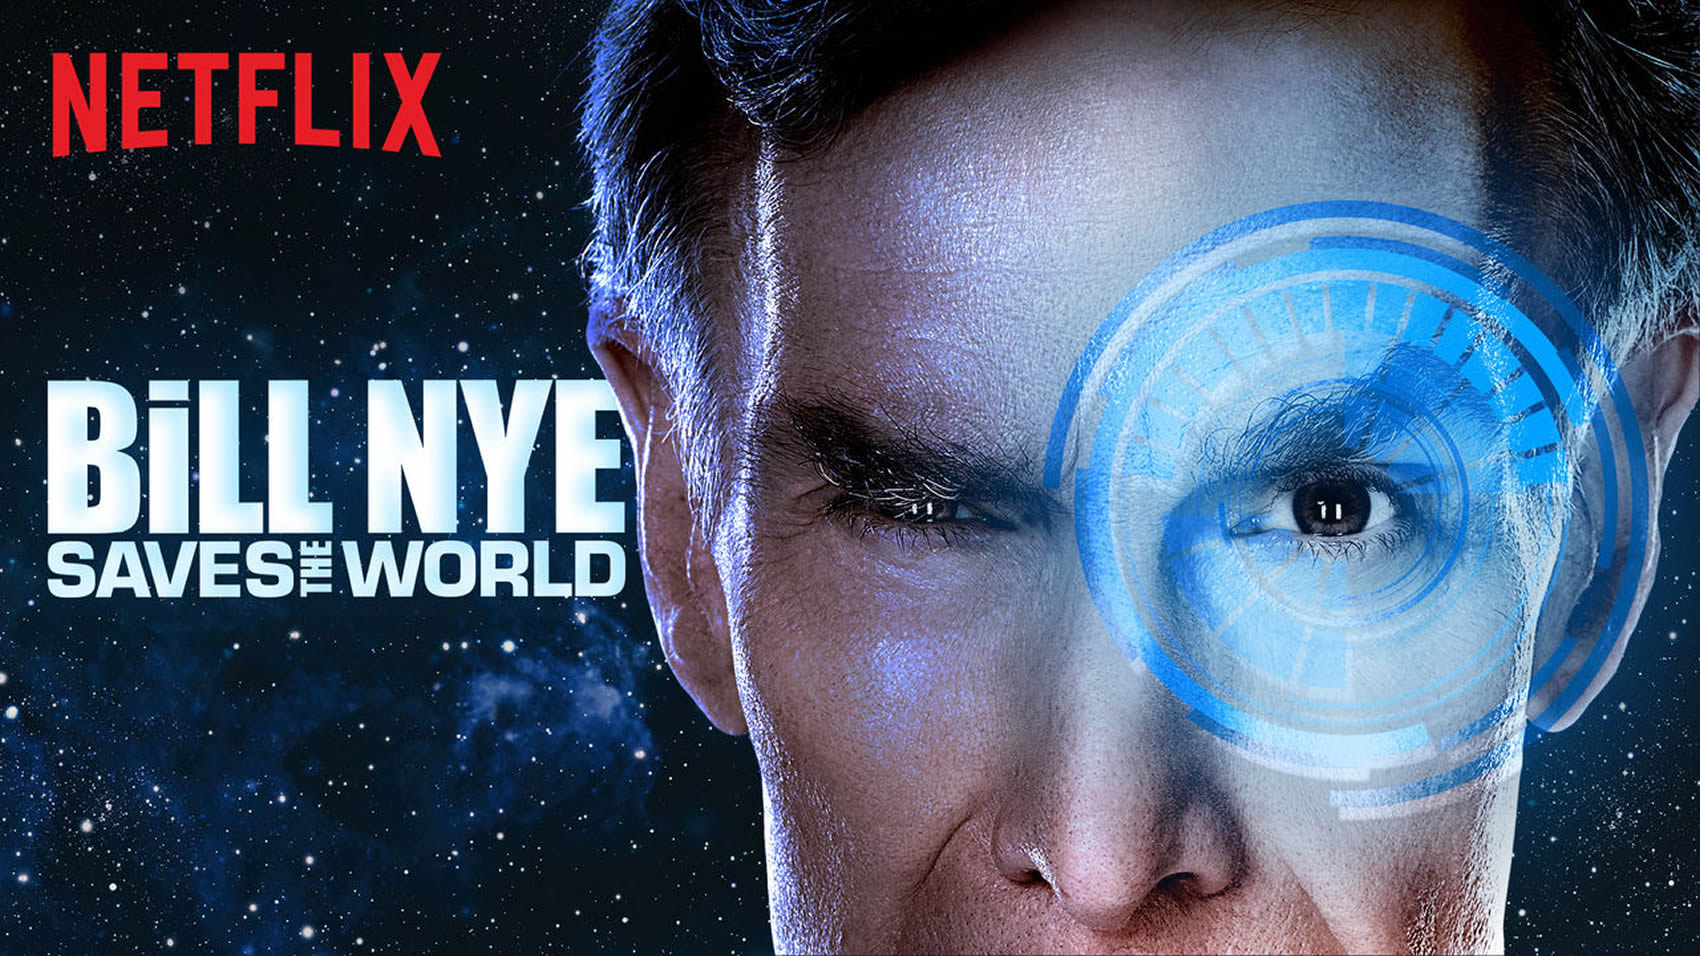 Bill Nye Saves the World - Image Credit and Copyright: © Netflix